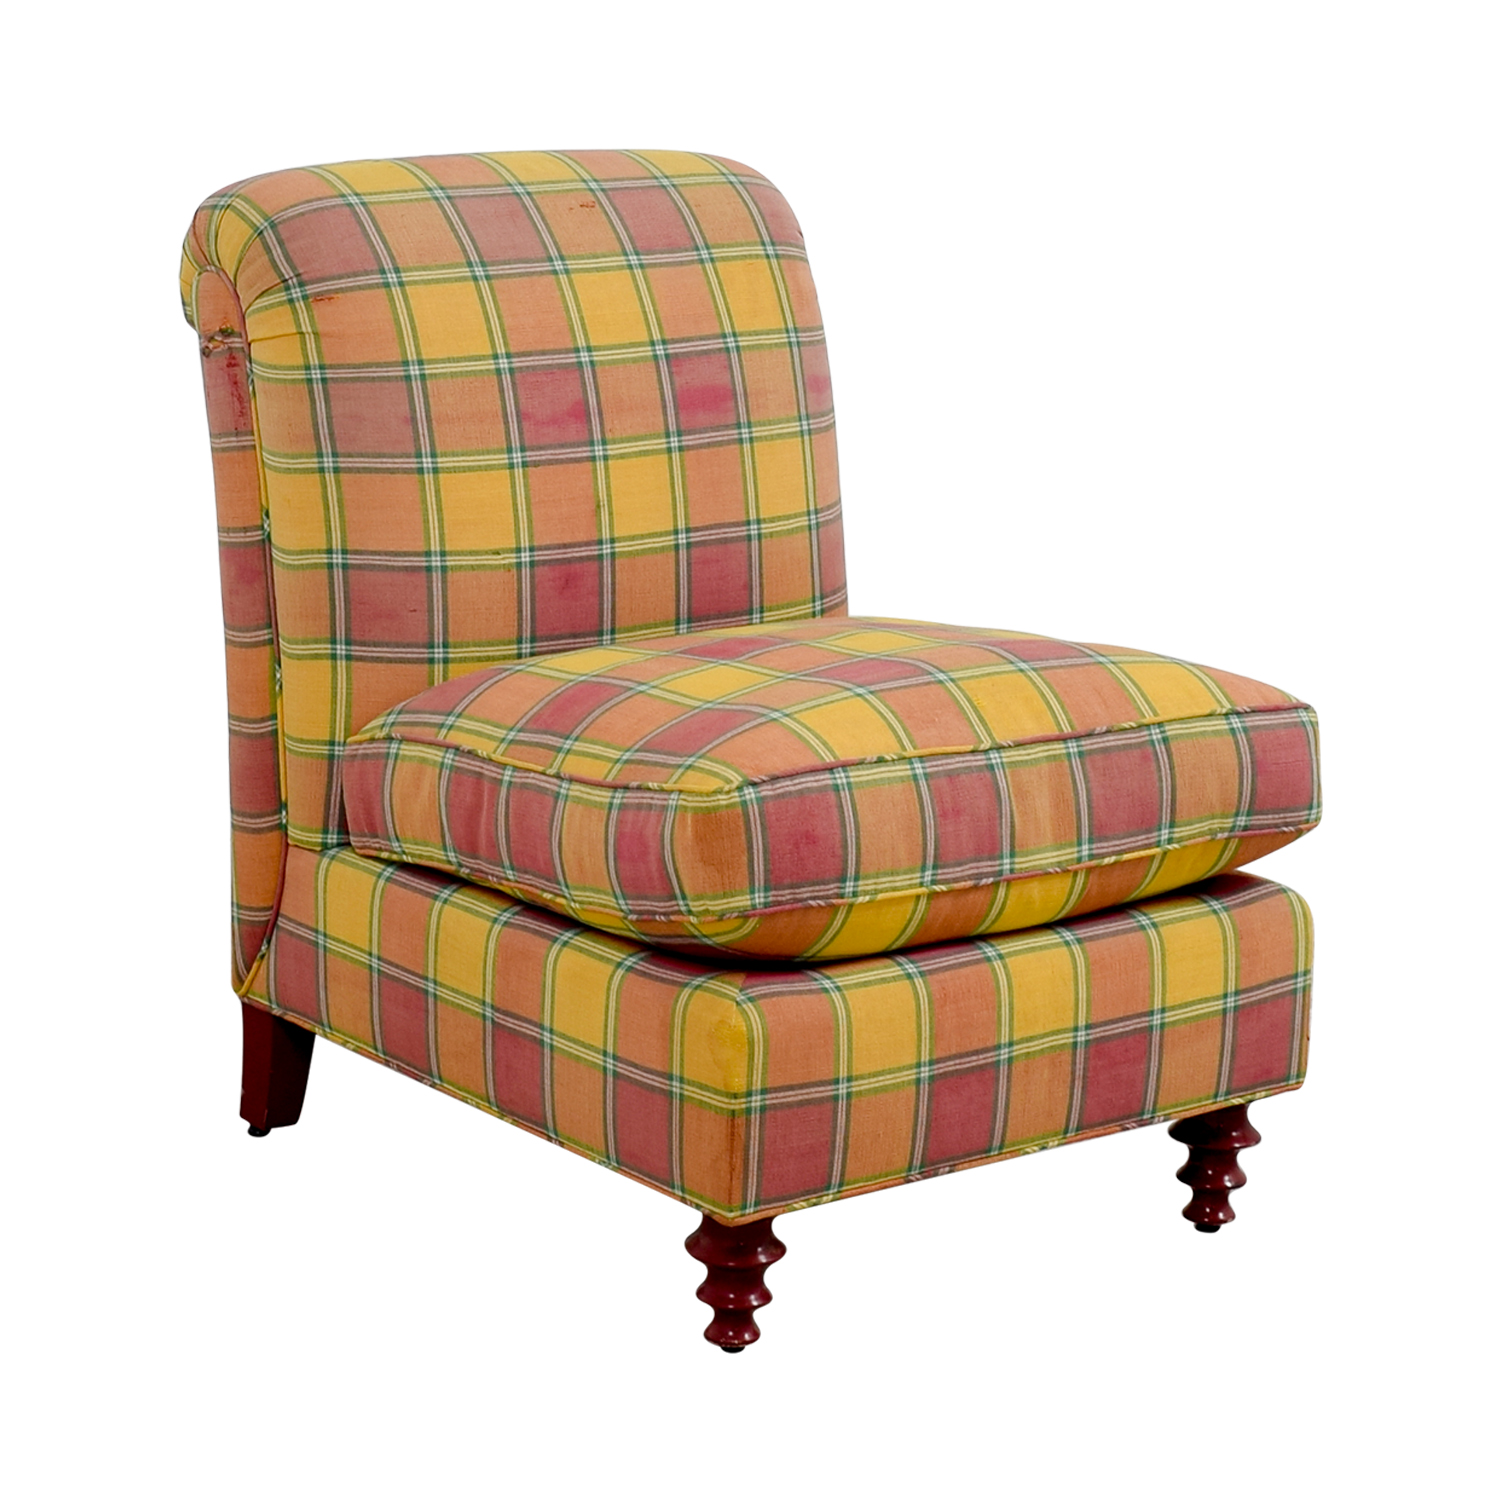 40% OFF Furniture Masters Furniture Masters Red and Yellow Plaid